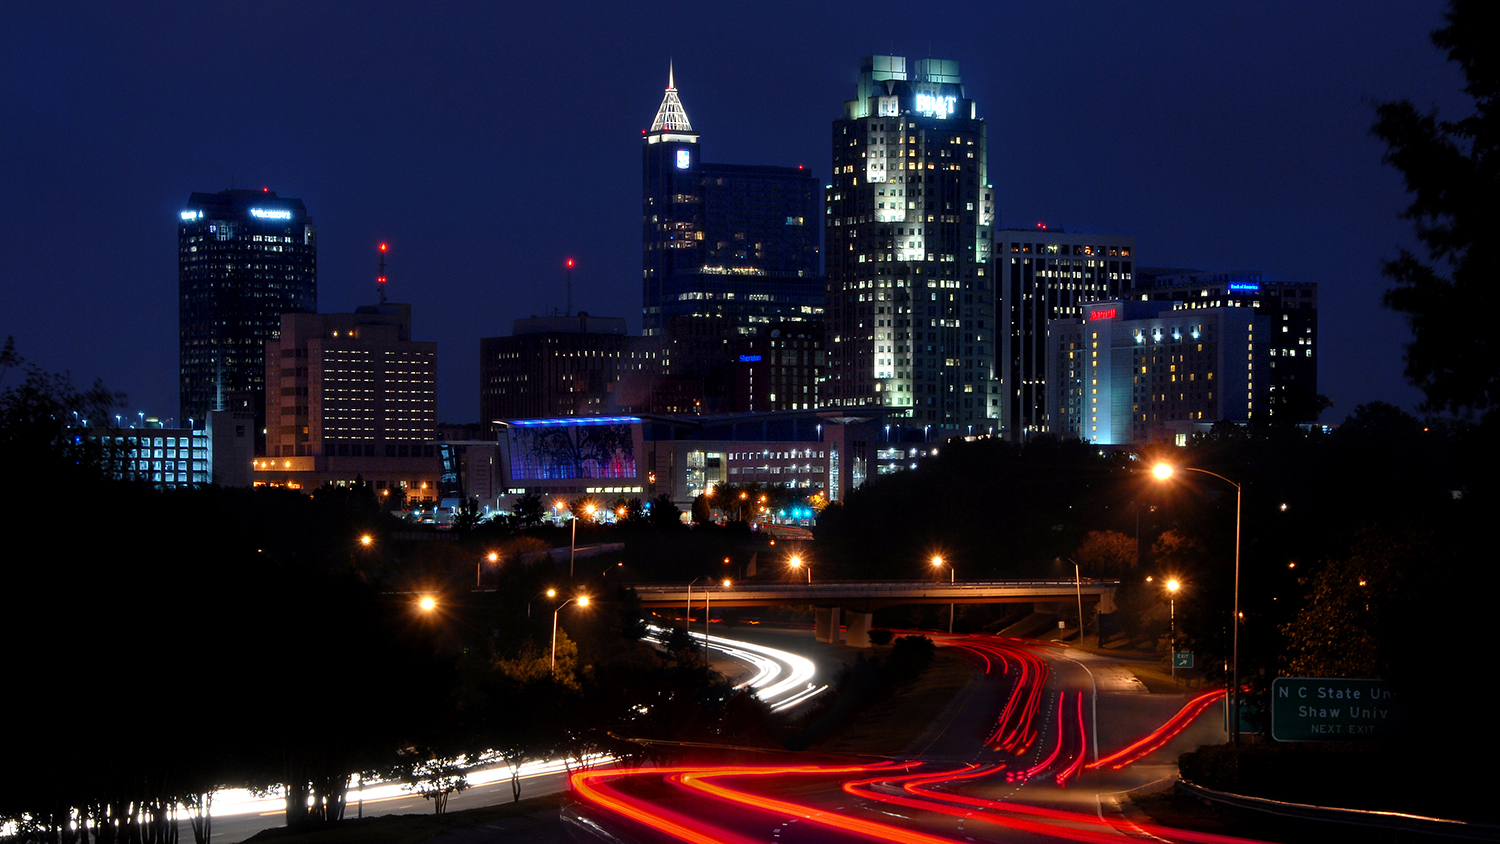 Skyline of Raleigh in the early evening